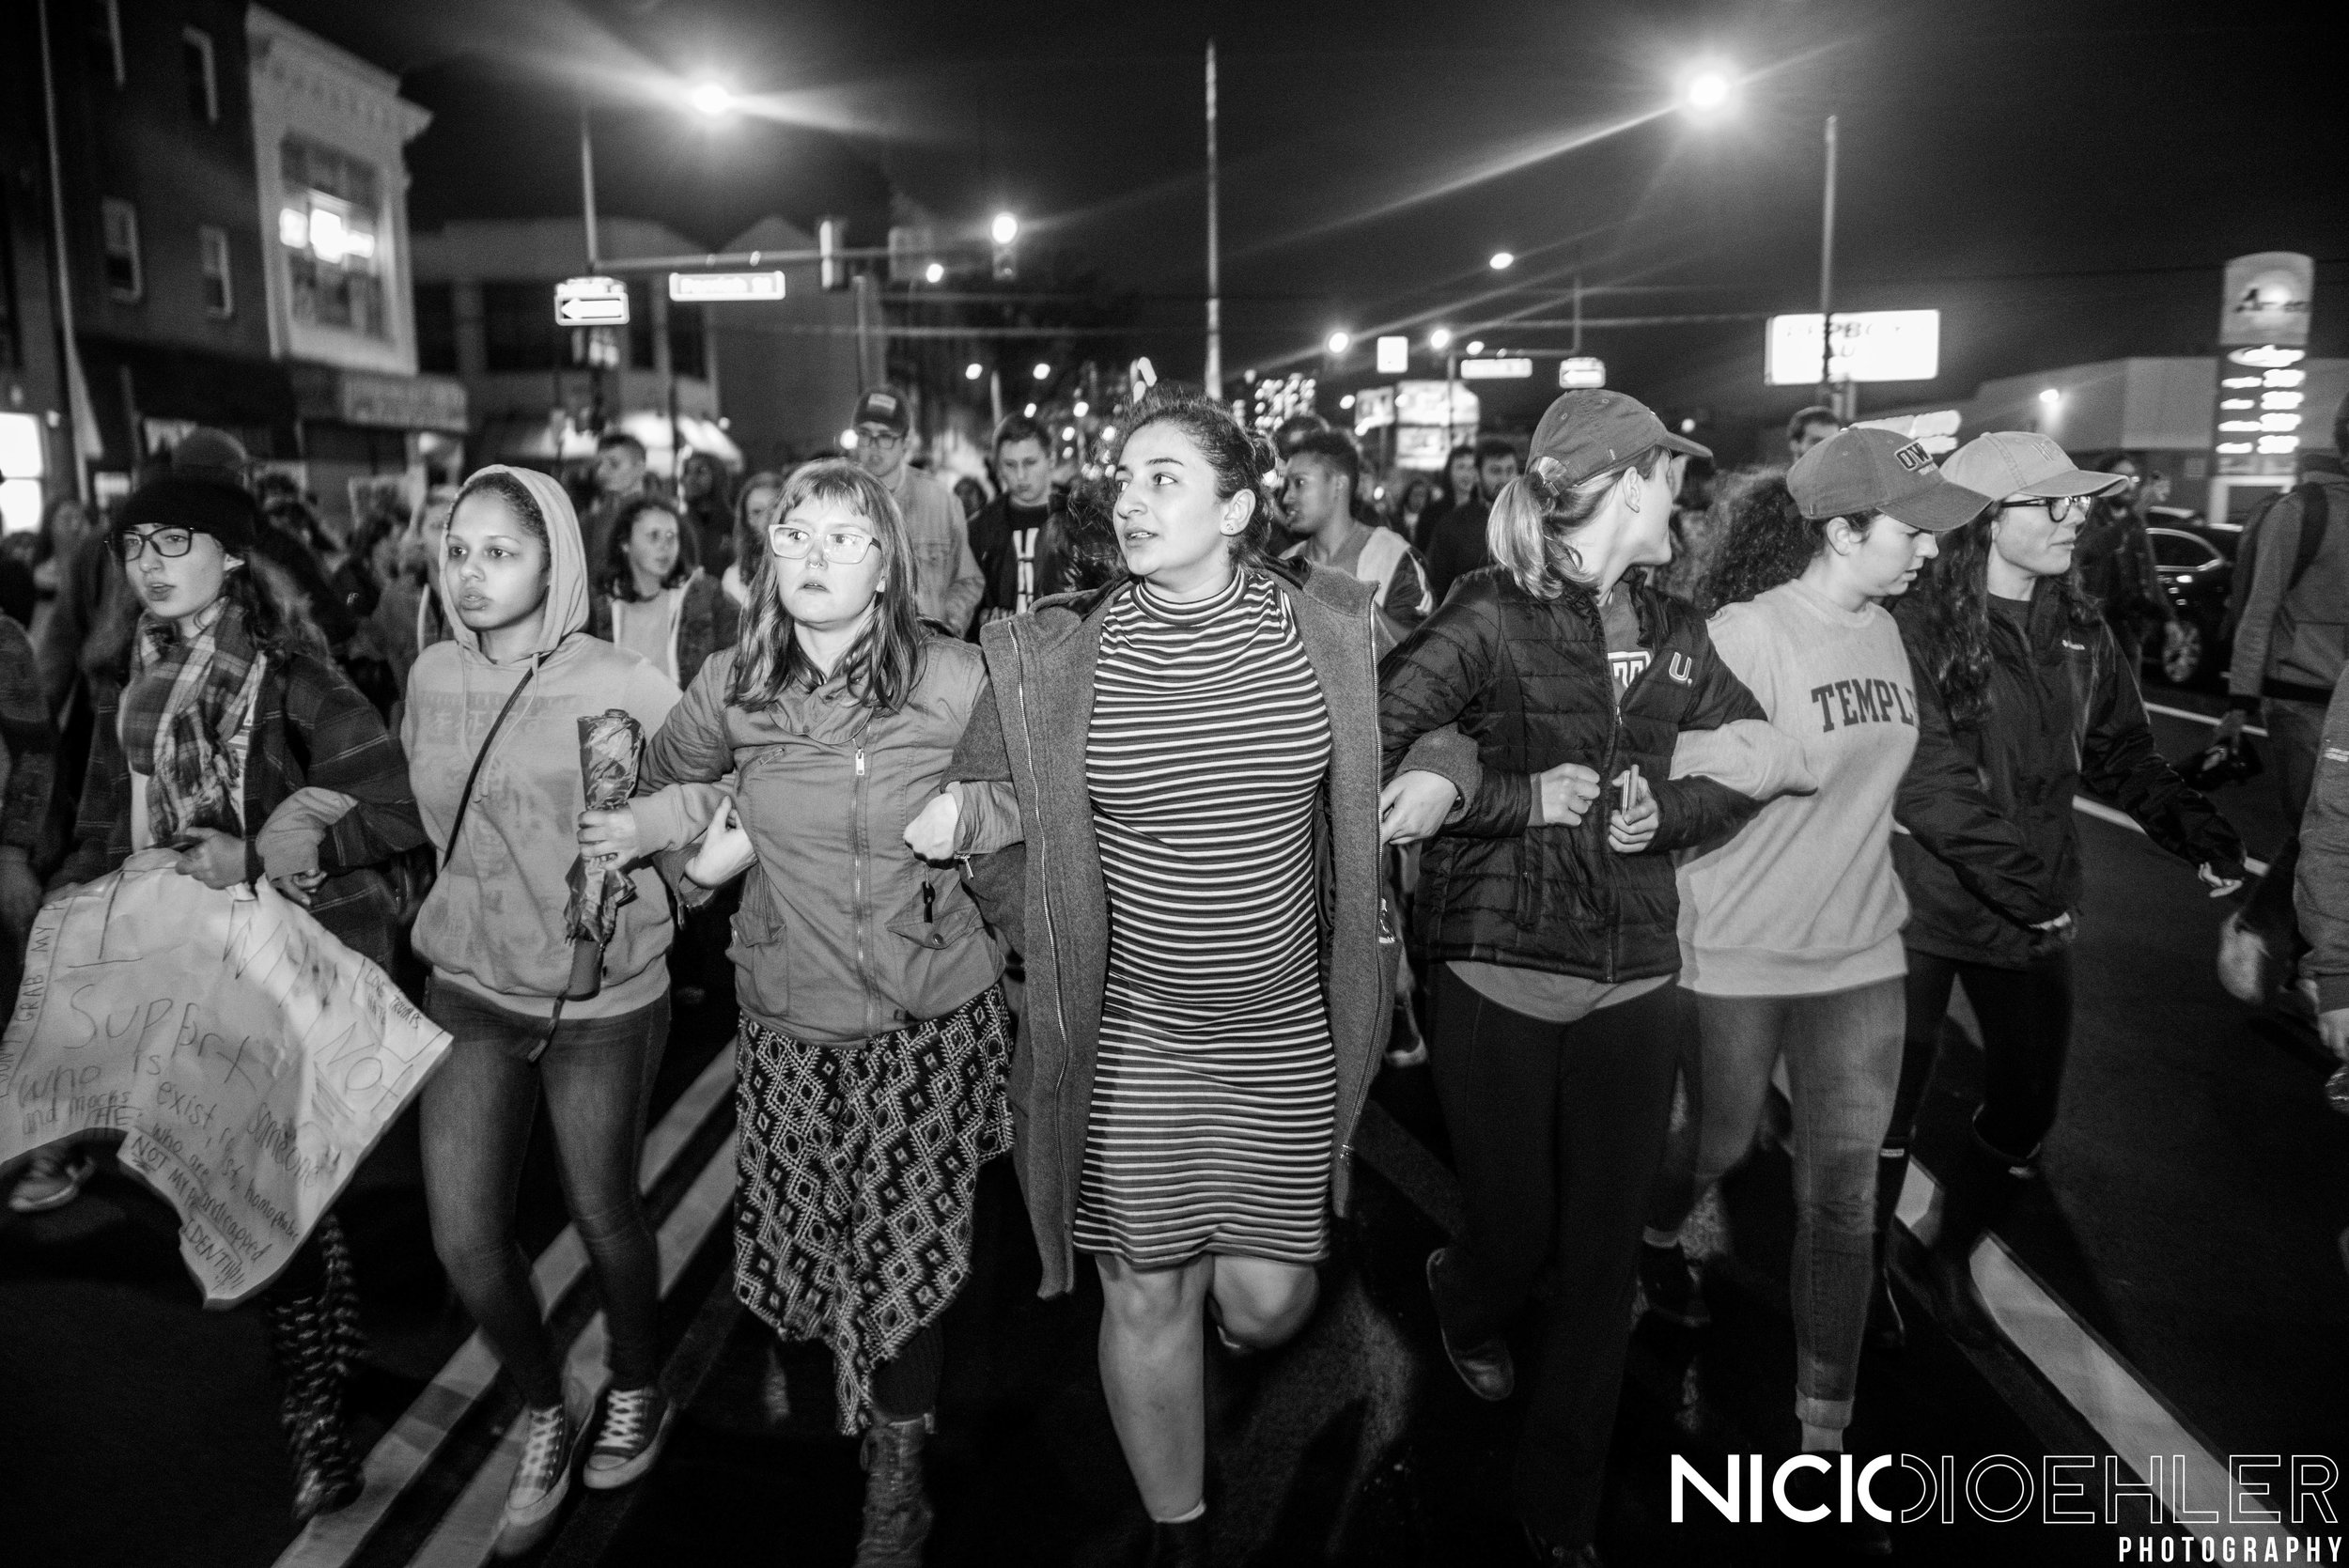 Protestors march through the streets with locked arms.